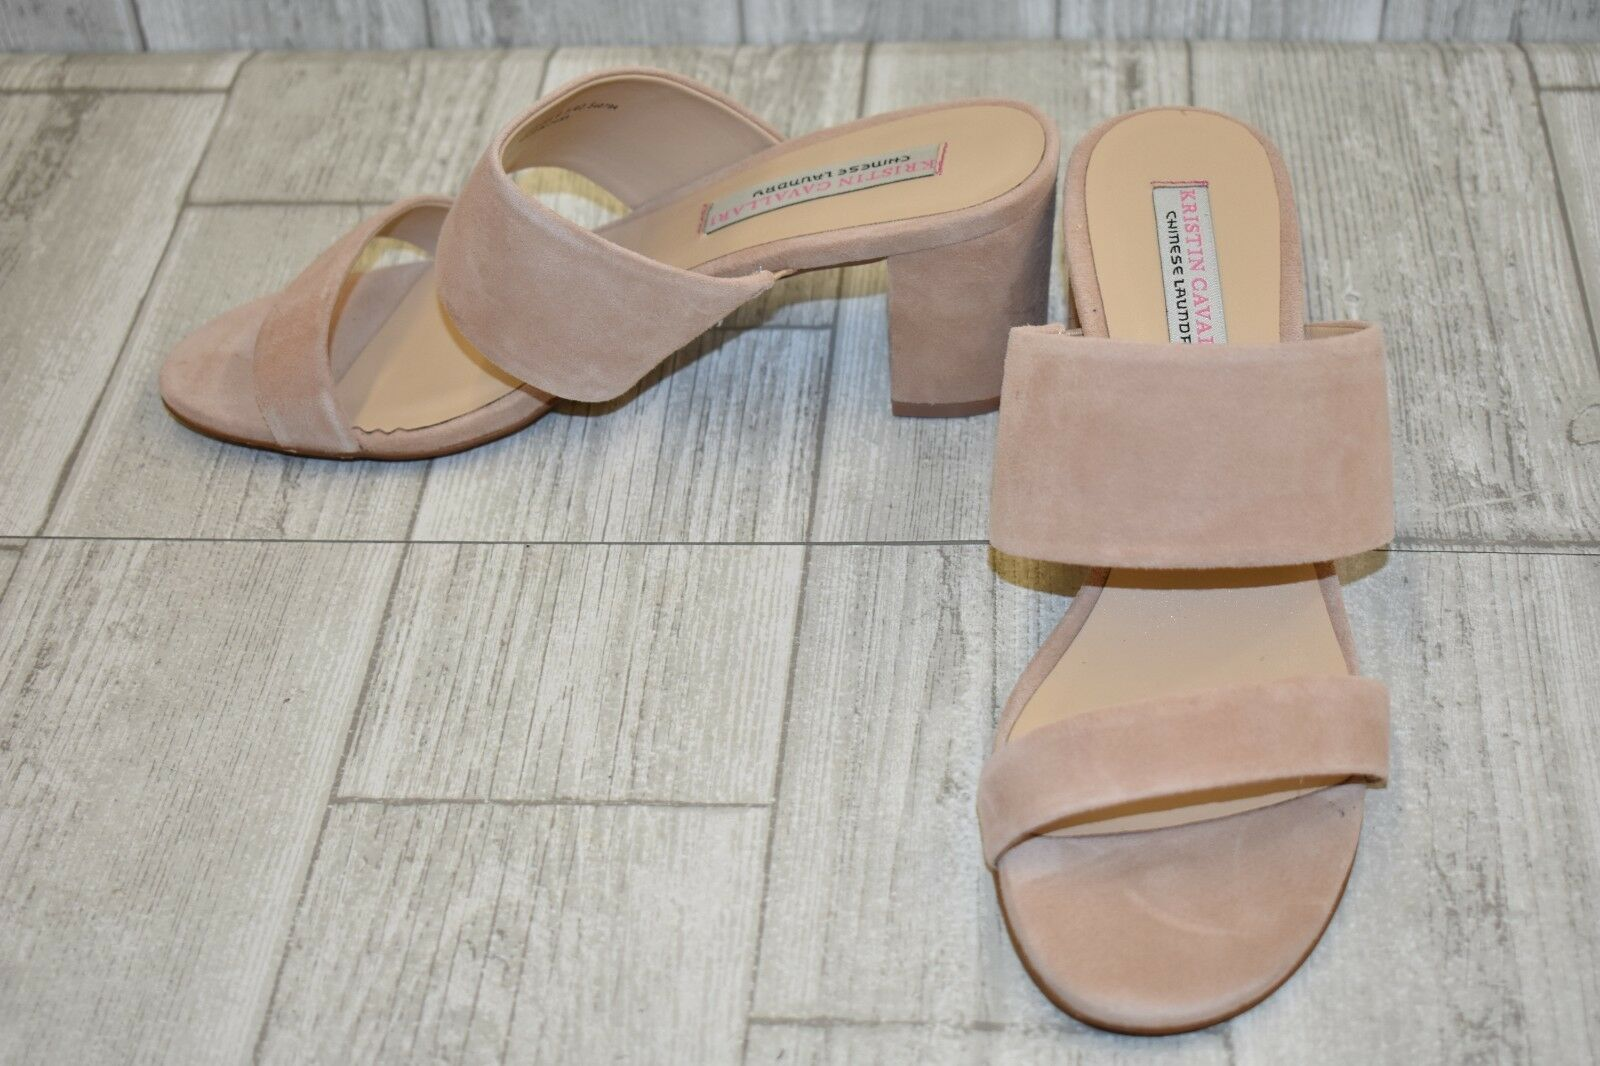 Kristin Cavallari Lakeview Suede Slide Sandals, Women's Size 9.5, Tigers Eye